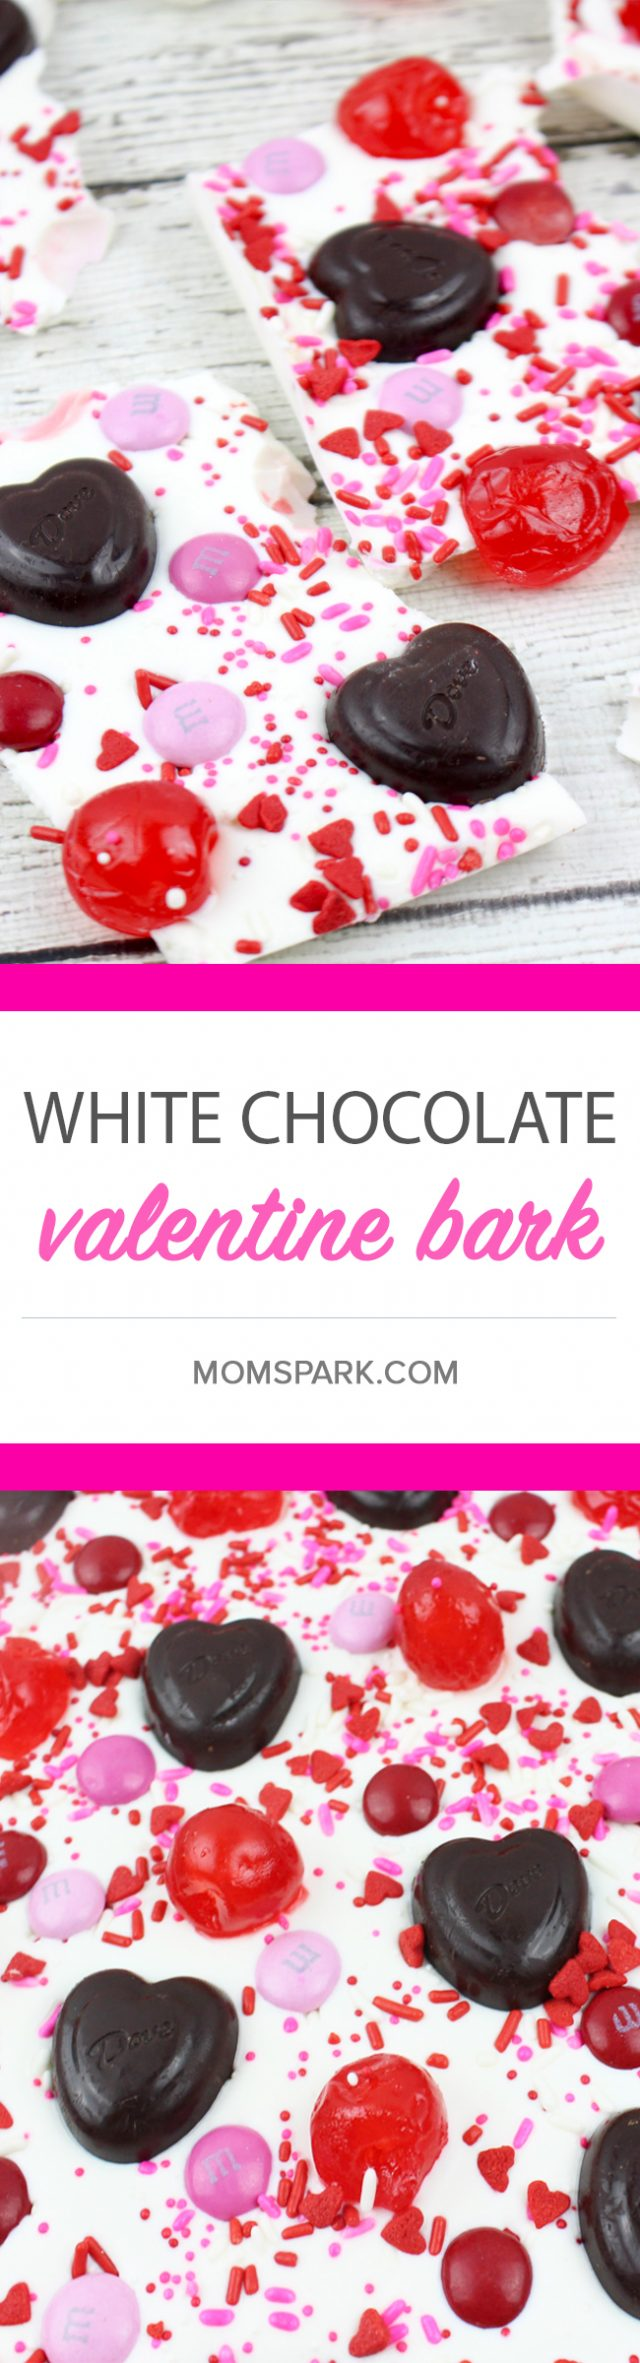 White chocolate Valentine's Day bark that is full of yummy chocolates, cherries, and sprinkles. So perfect for a treat for your loved one or...yourself.